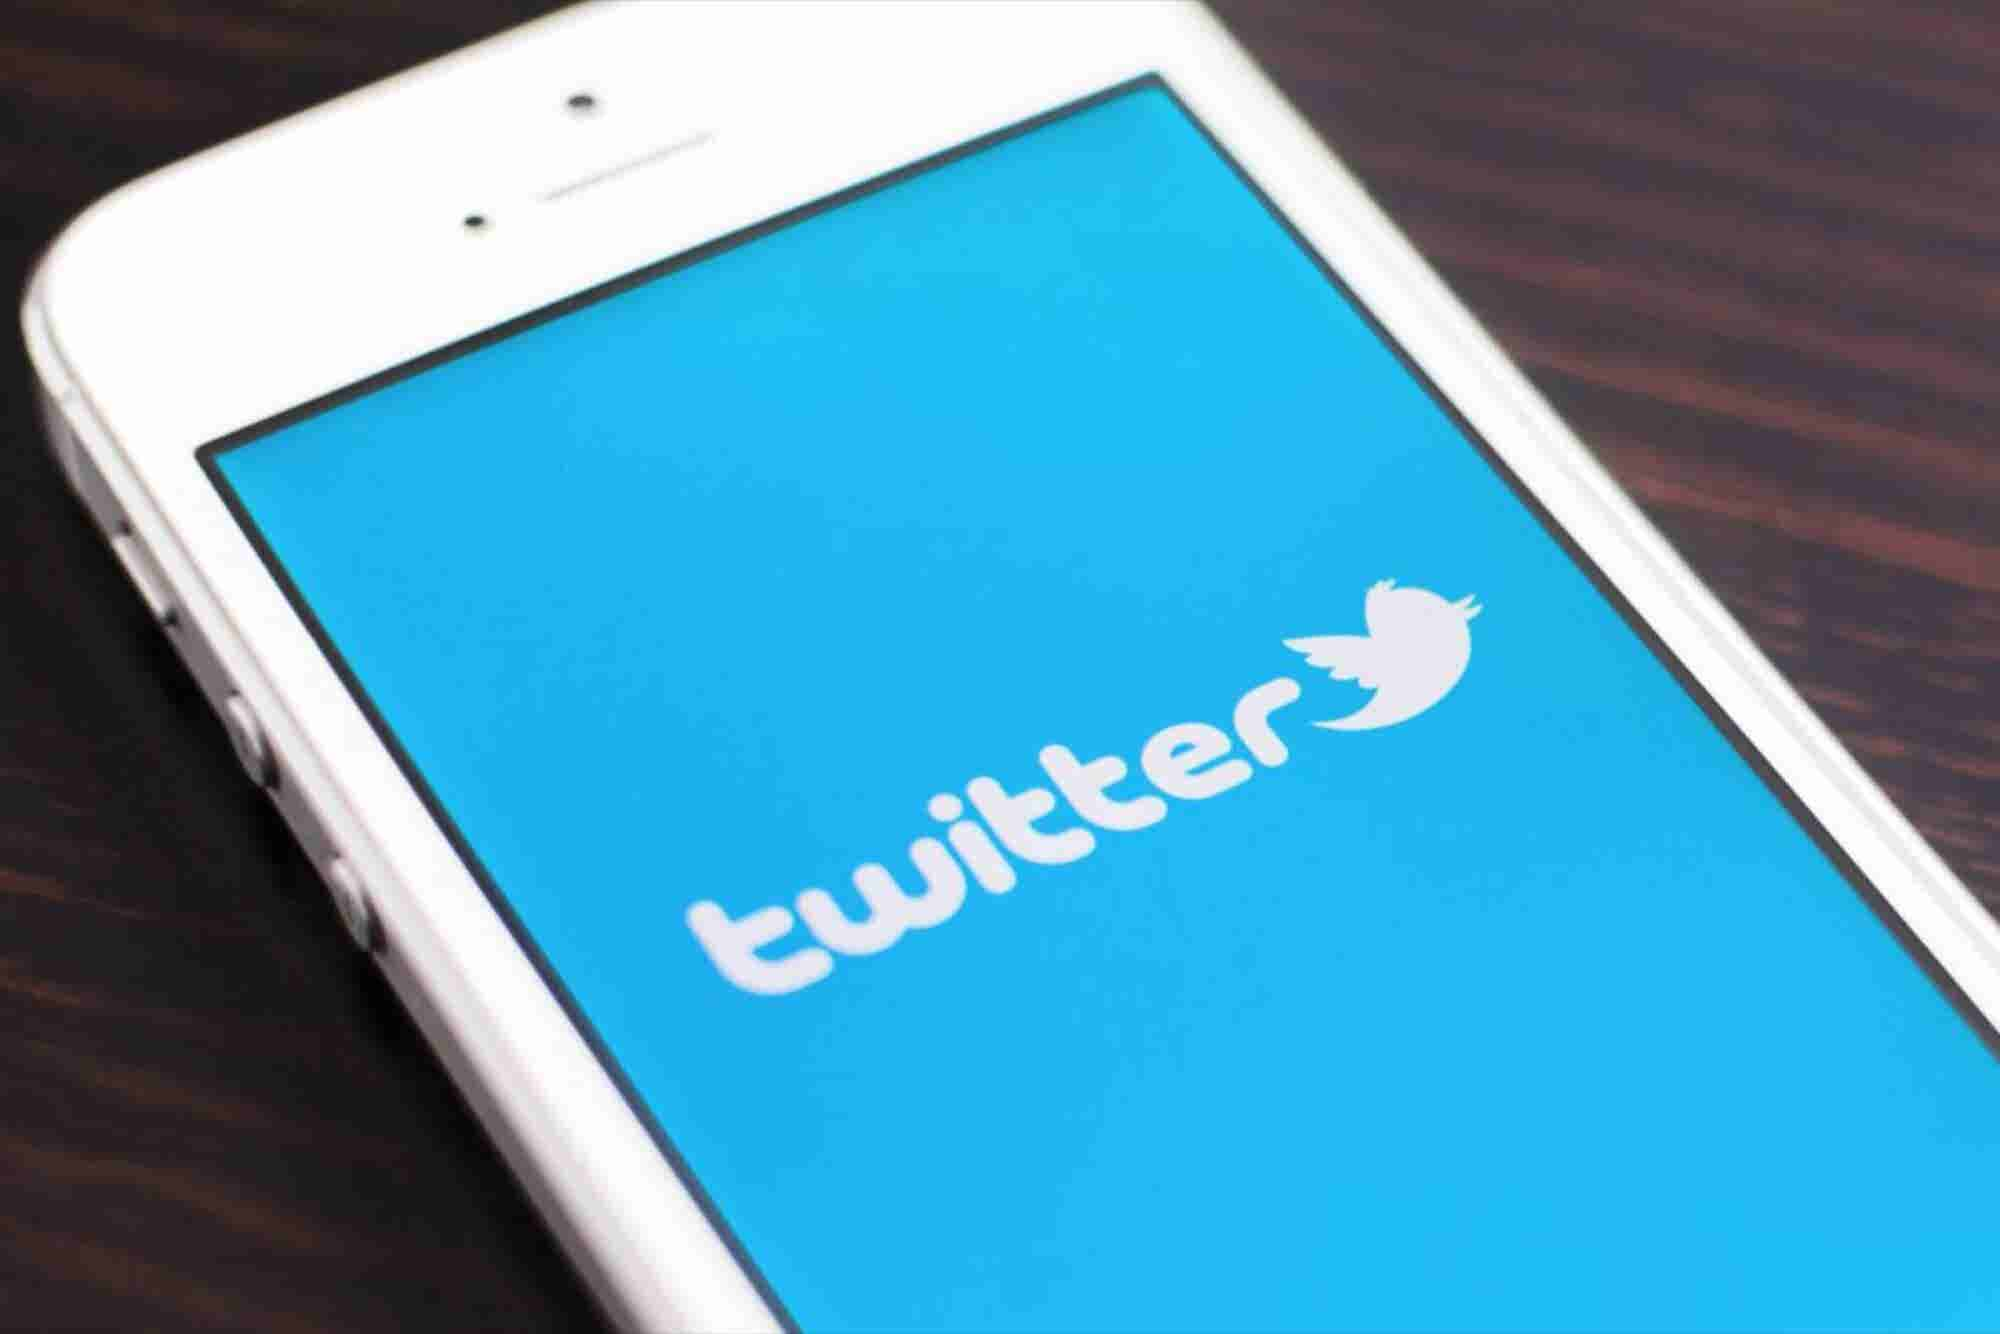 Twitter Unveils Anti-Bullying Tools: Your Weekly News Roundup